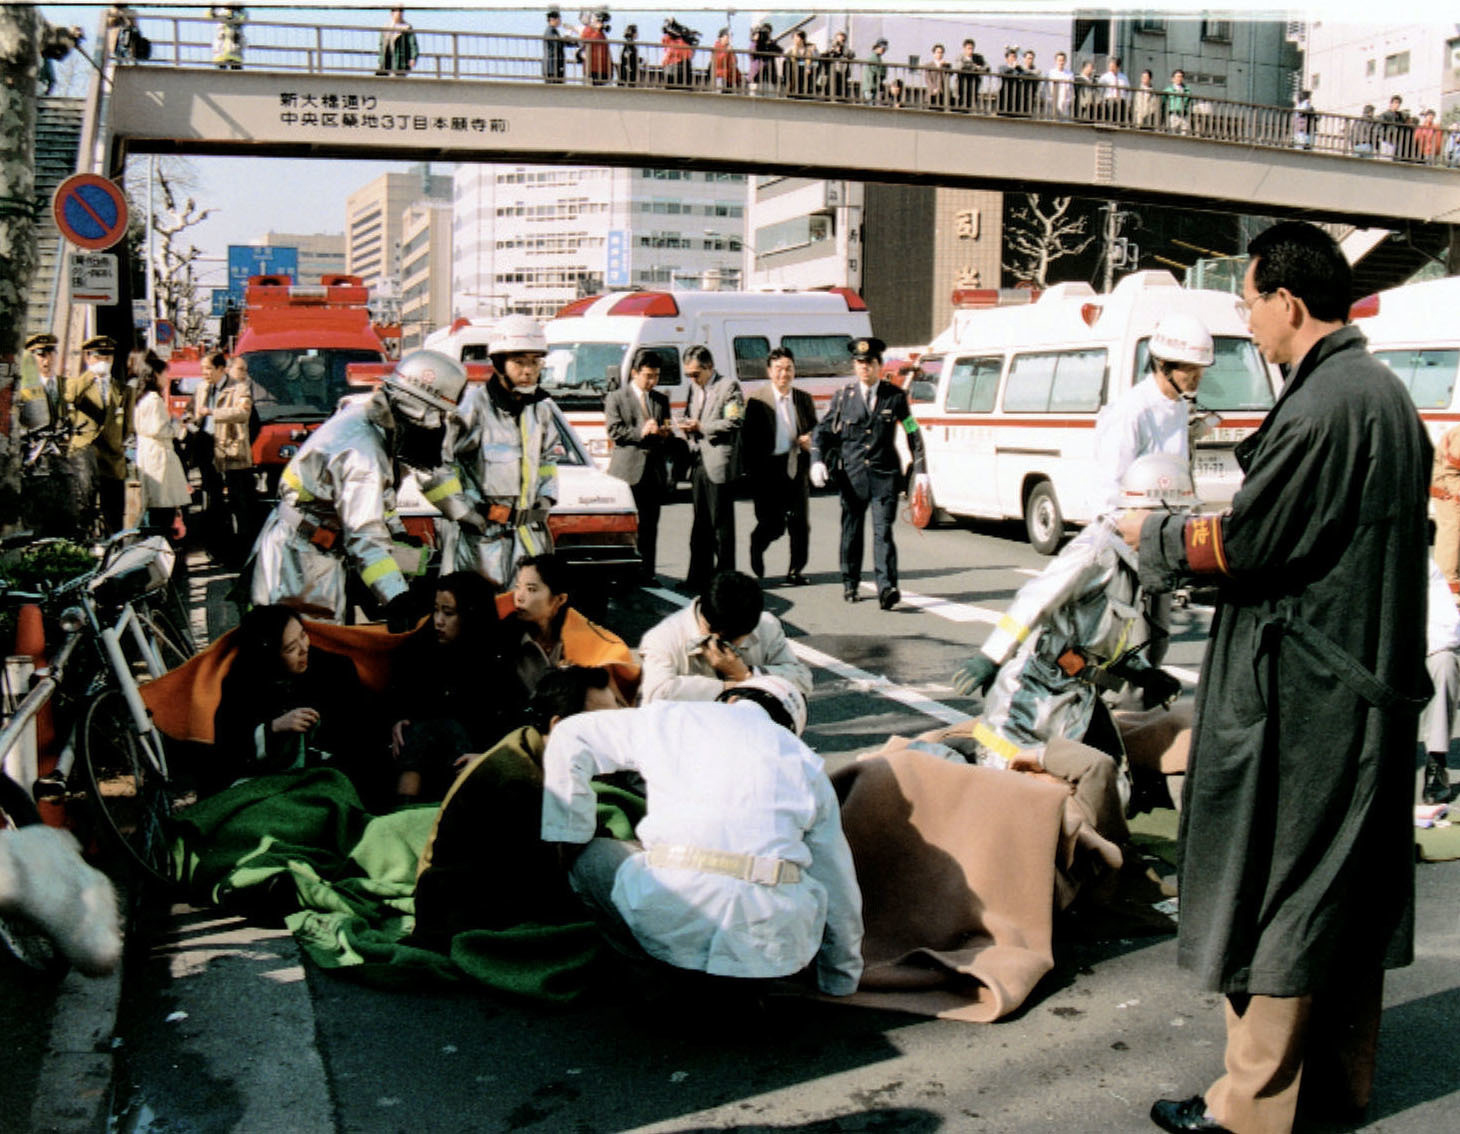 Victims of the Aum sarin attacks receive treatment in front of Tsukiji Station in Tokyo, March 20, 1995. | KYODO